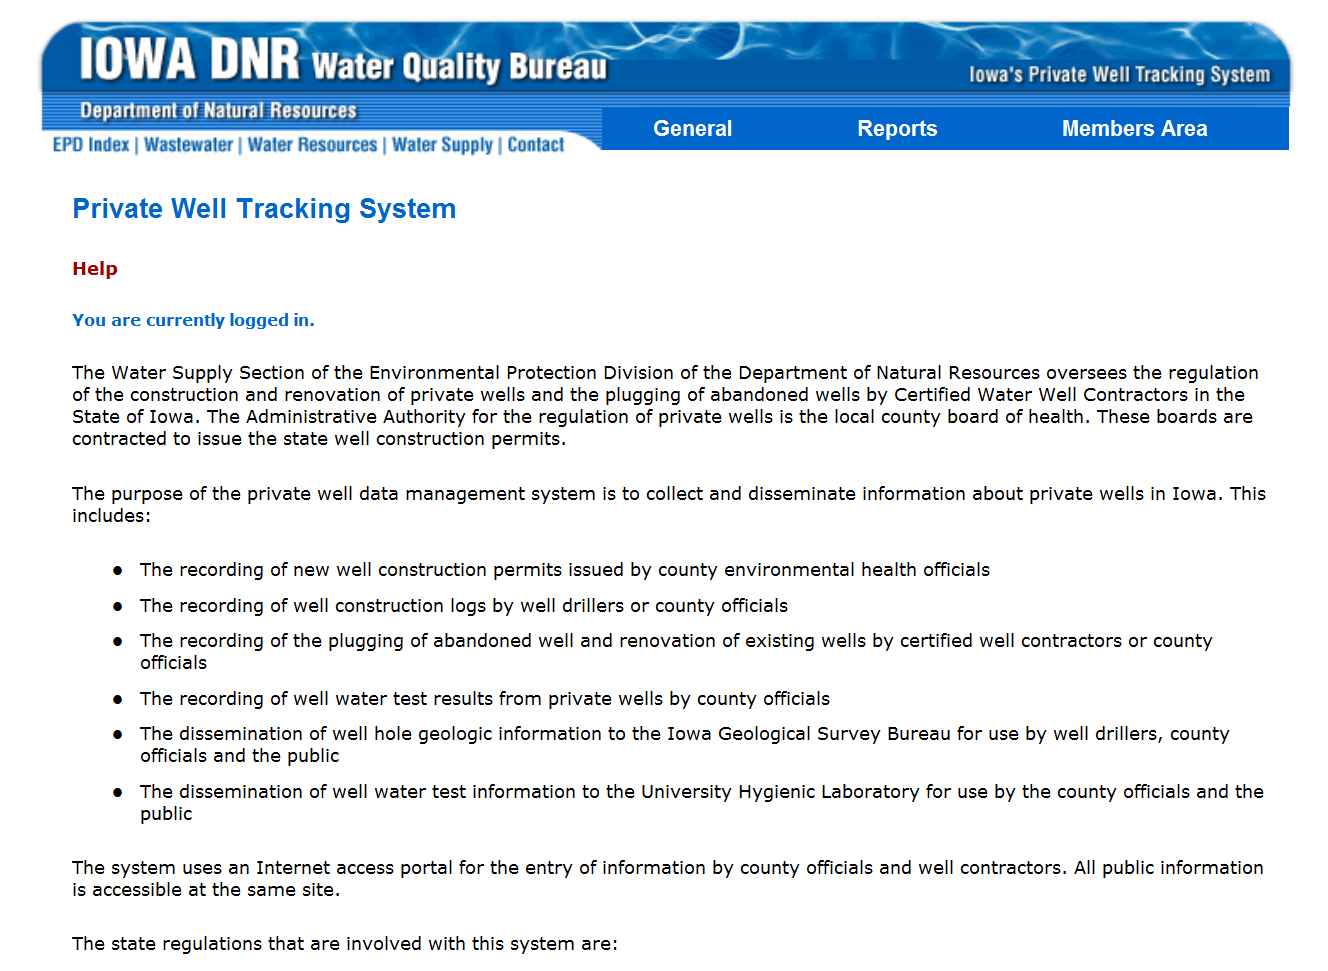 Private Well Tracking System screen image and link